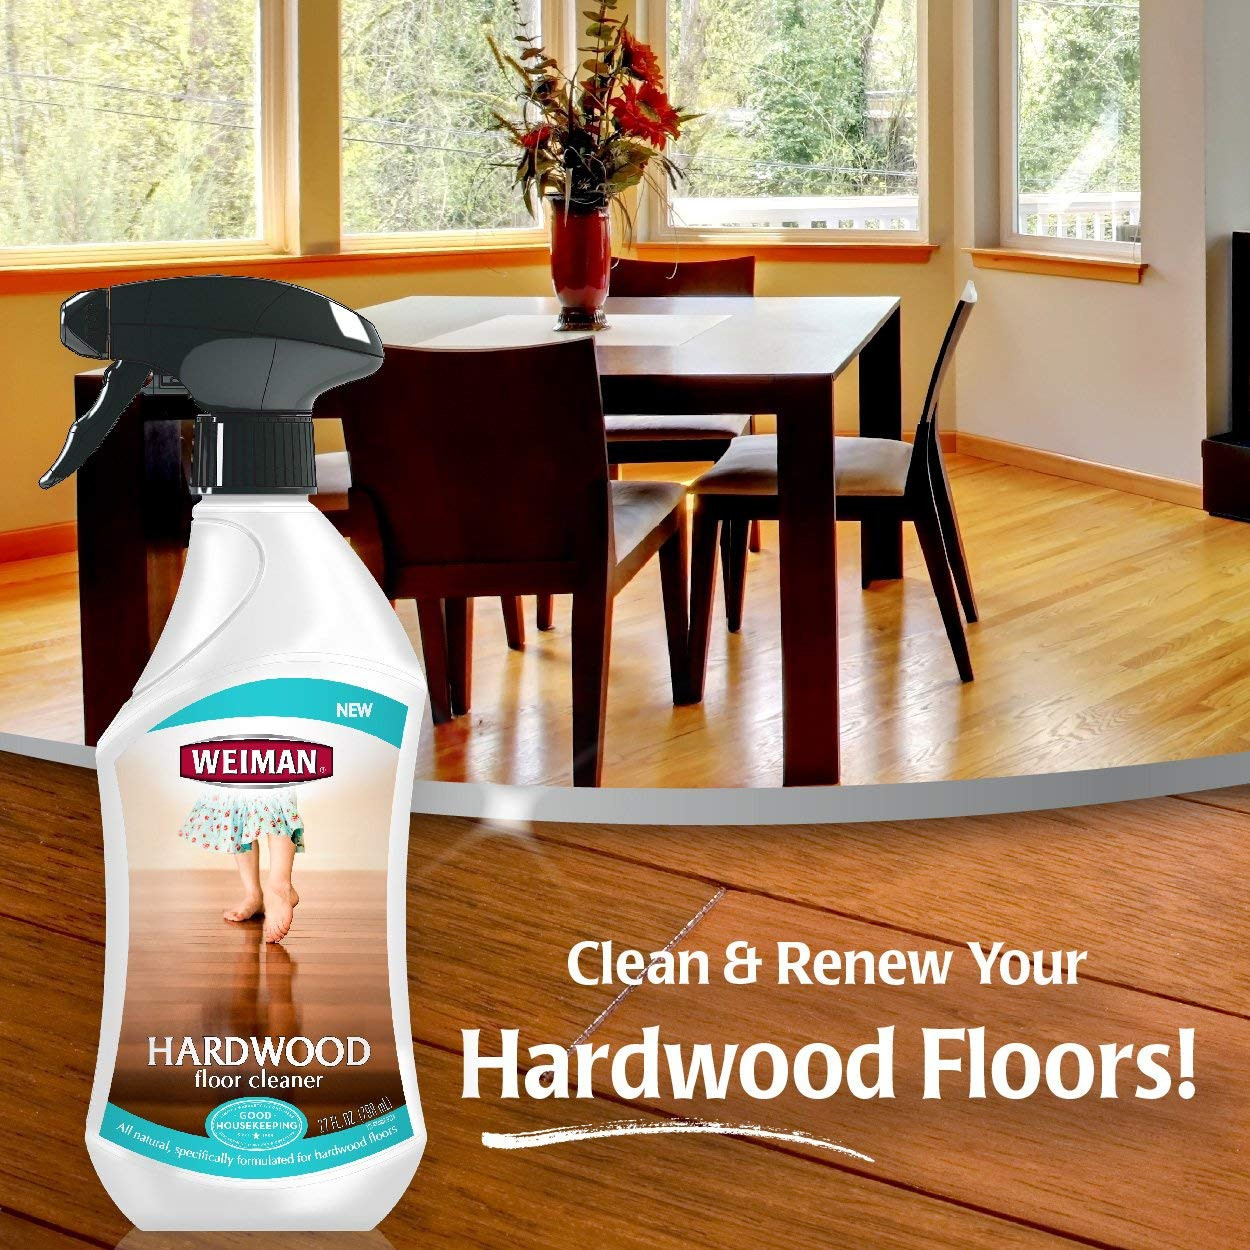 trends in hardwood flooring 2015 of amazon com weiman hardwood floor cleaner surface safe no harsh inside amazon com weiman hardwood floor cleaner surface safe no harsh scent safe for use around kids and pets residue free 27 oz trigger home kitchen